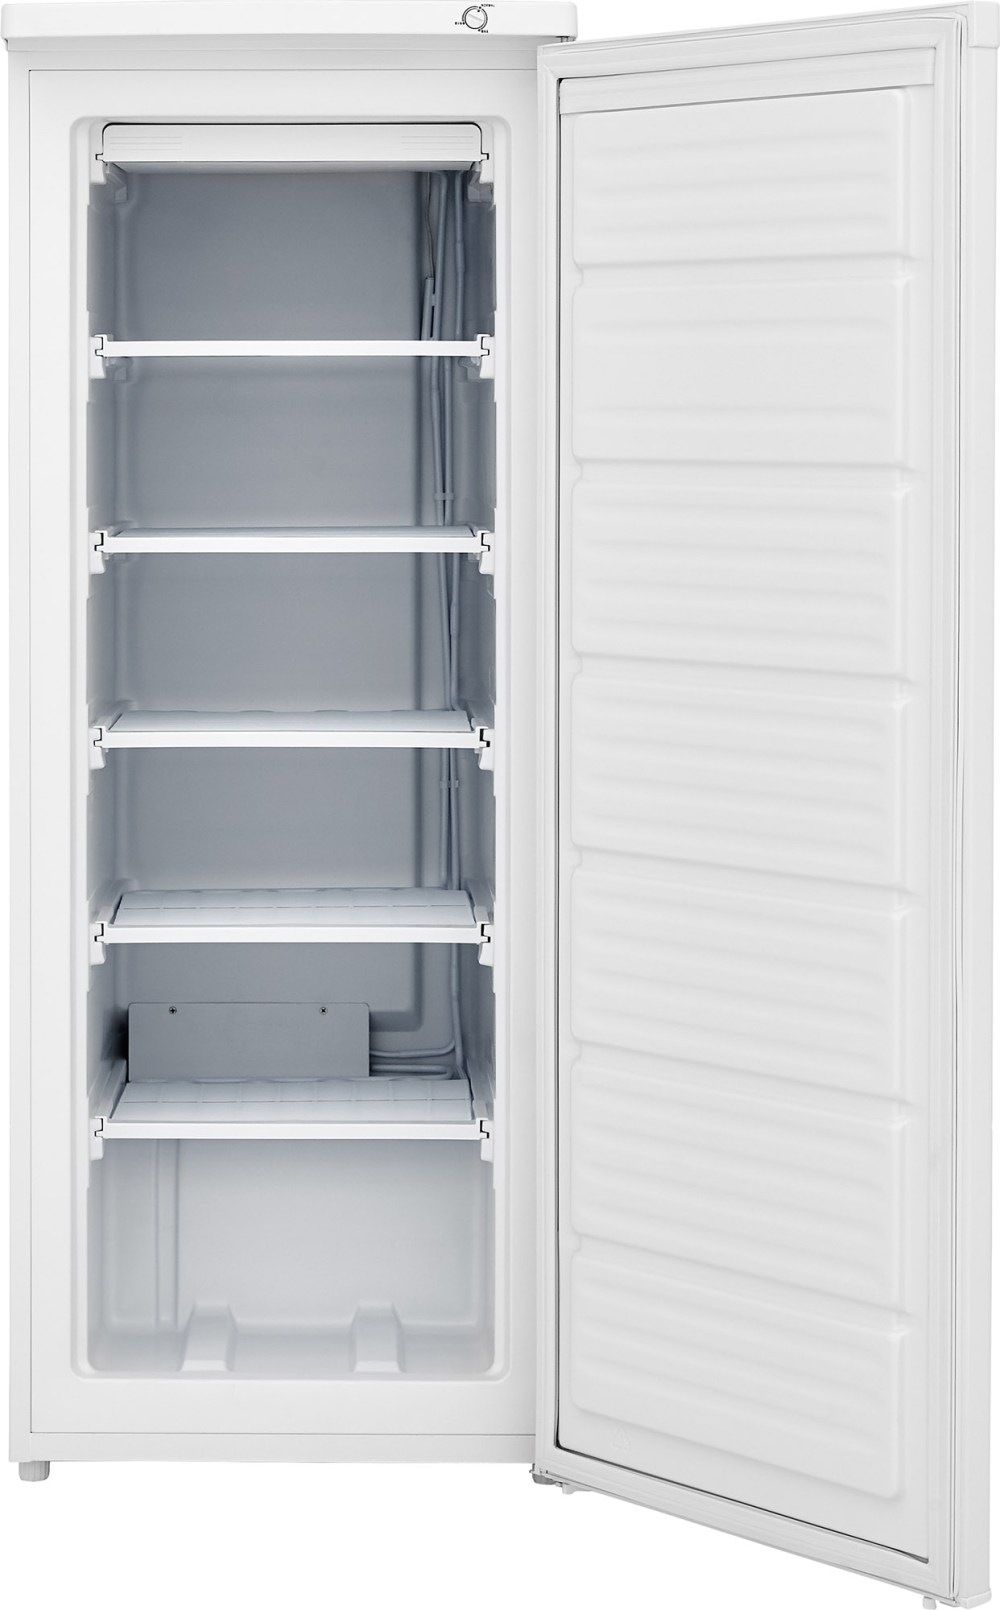 medium resolution of upright freezer sears outlet